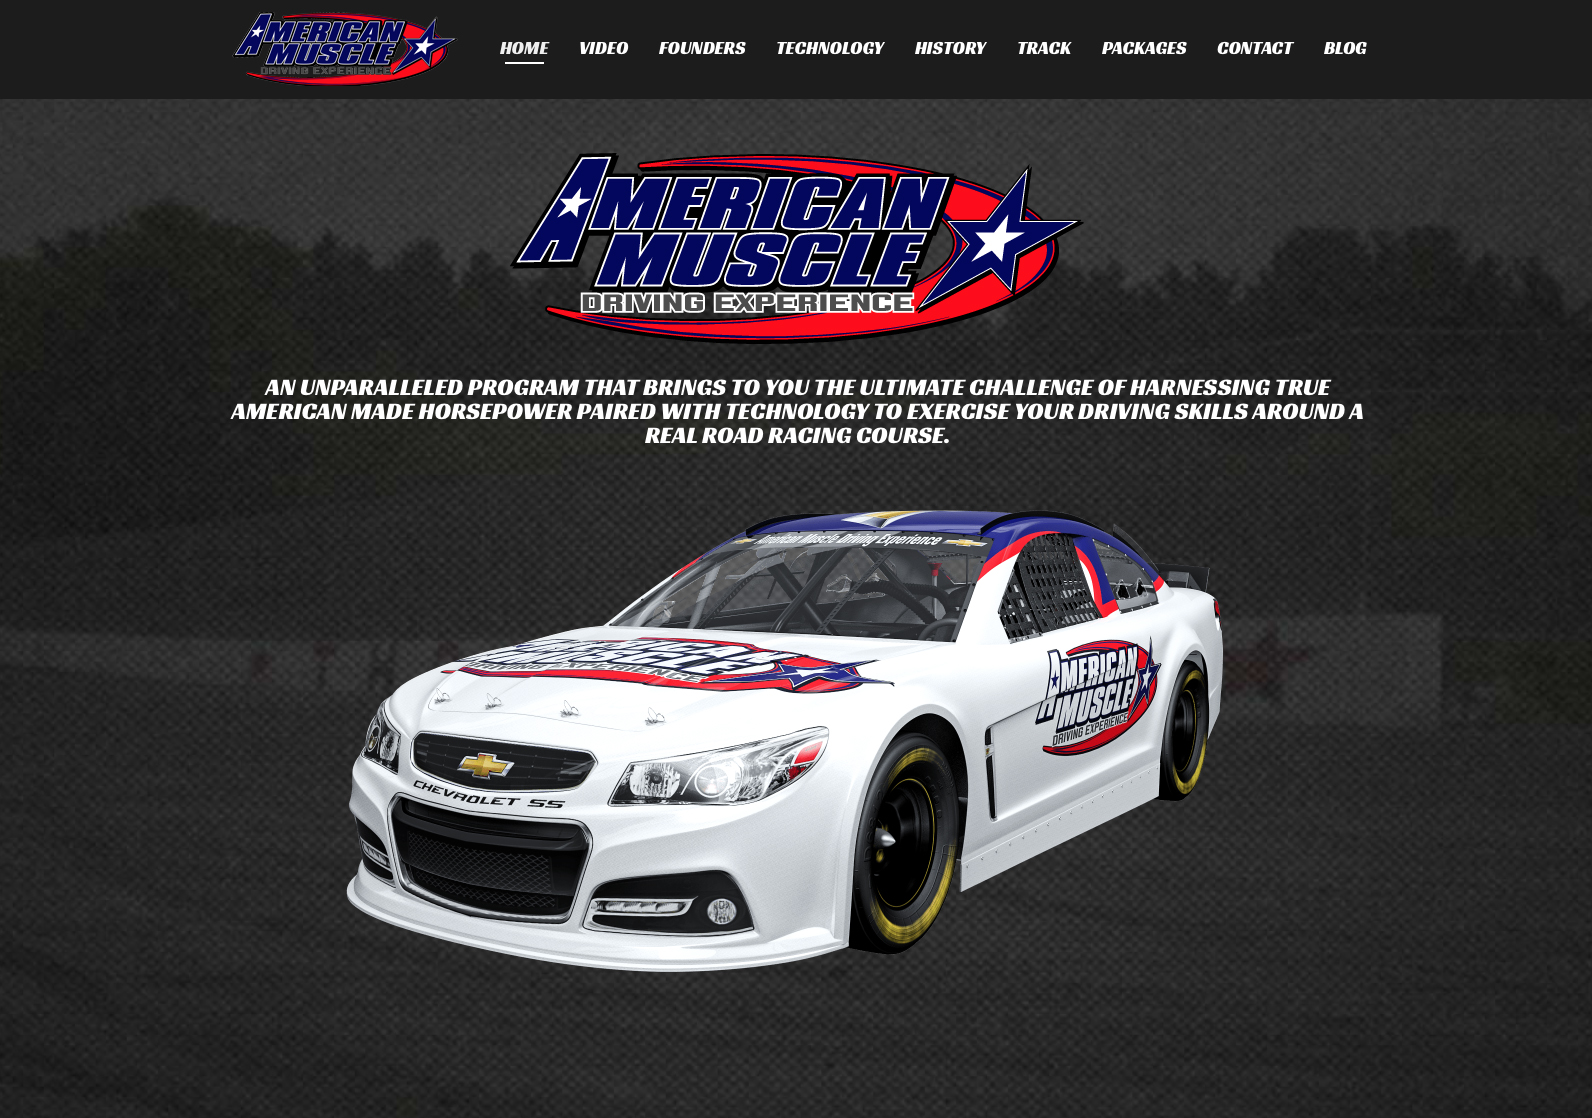 Rpm 3d inc the leader in 3d motorsports graphics driving experience which is owned by steve park and tommy baldwin jr both of which rpm 3d inc has done business with before in the nascar industry pronofoot35fo Image collections